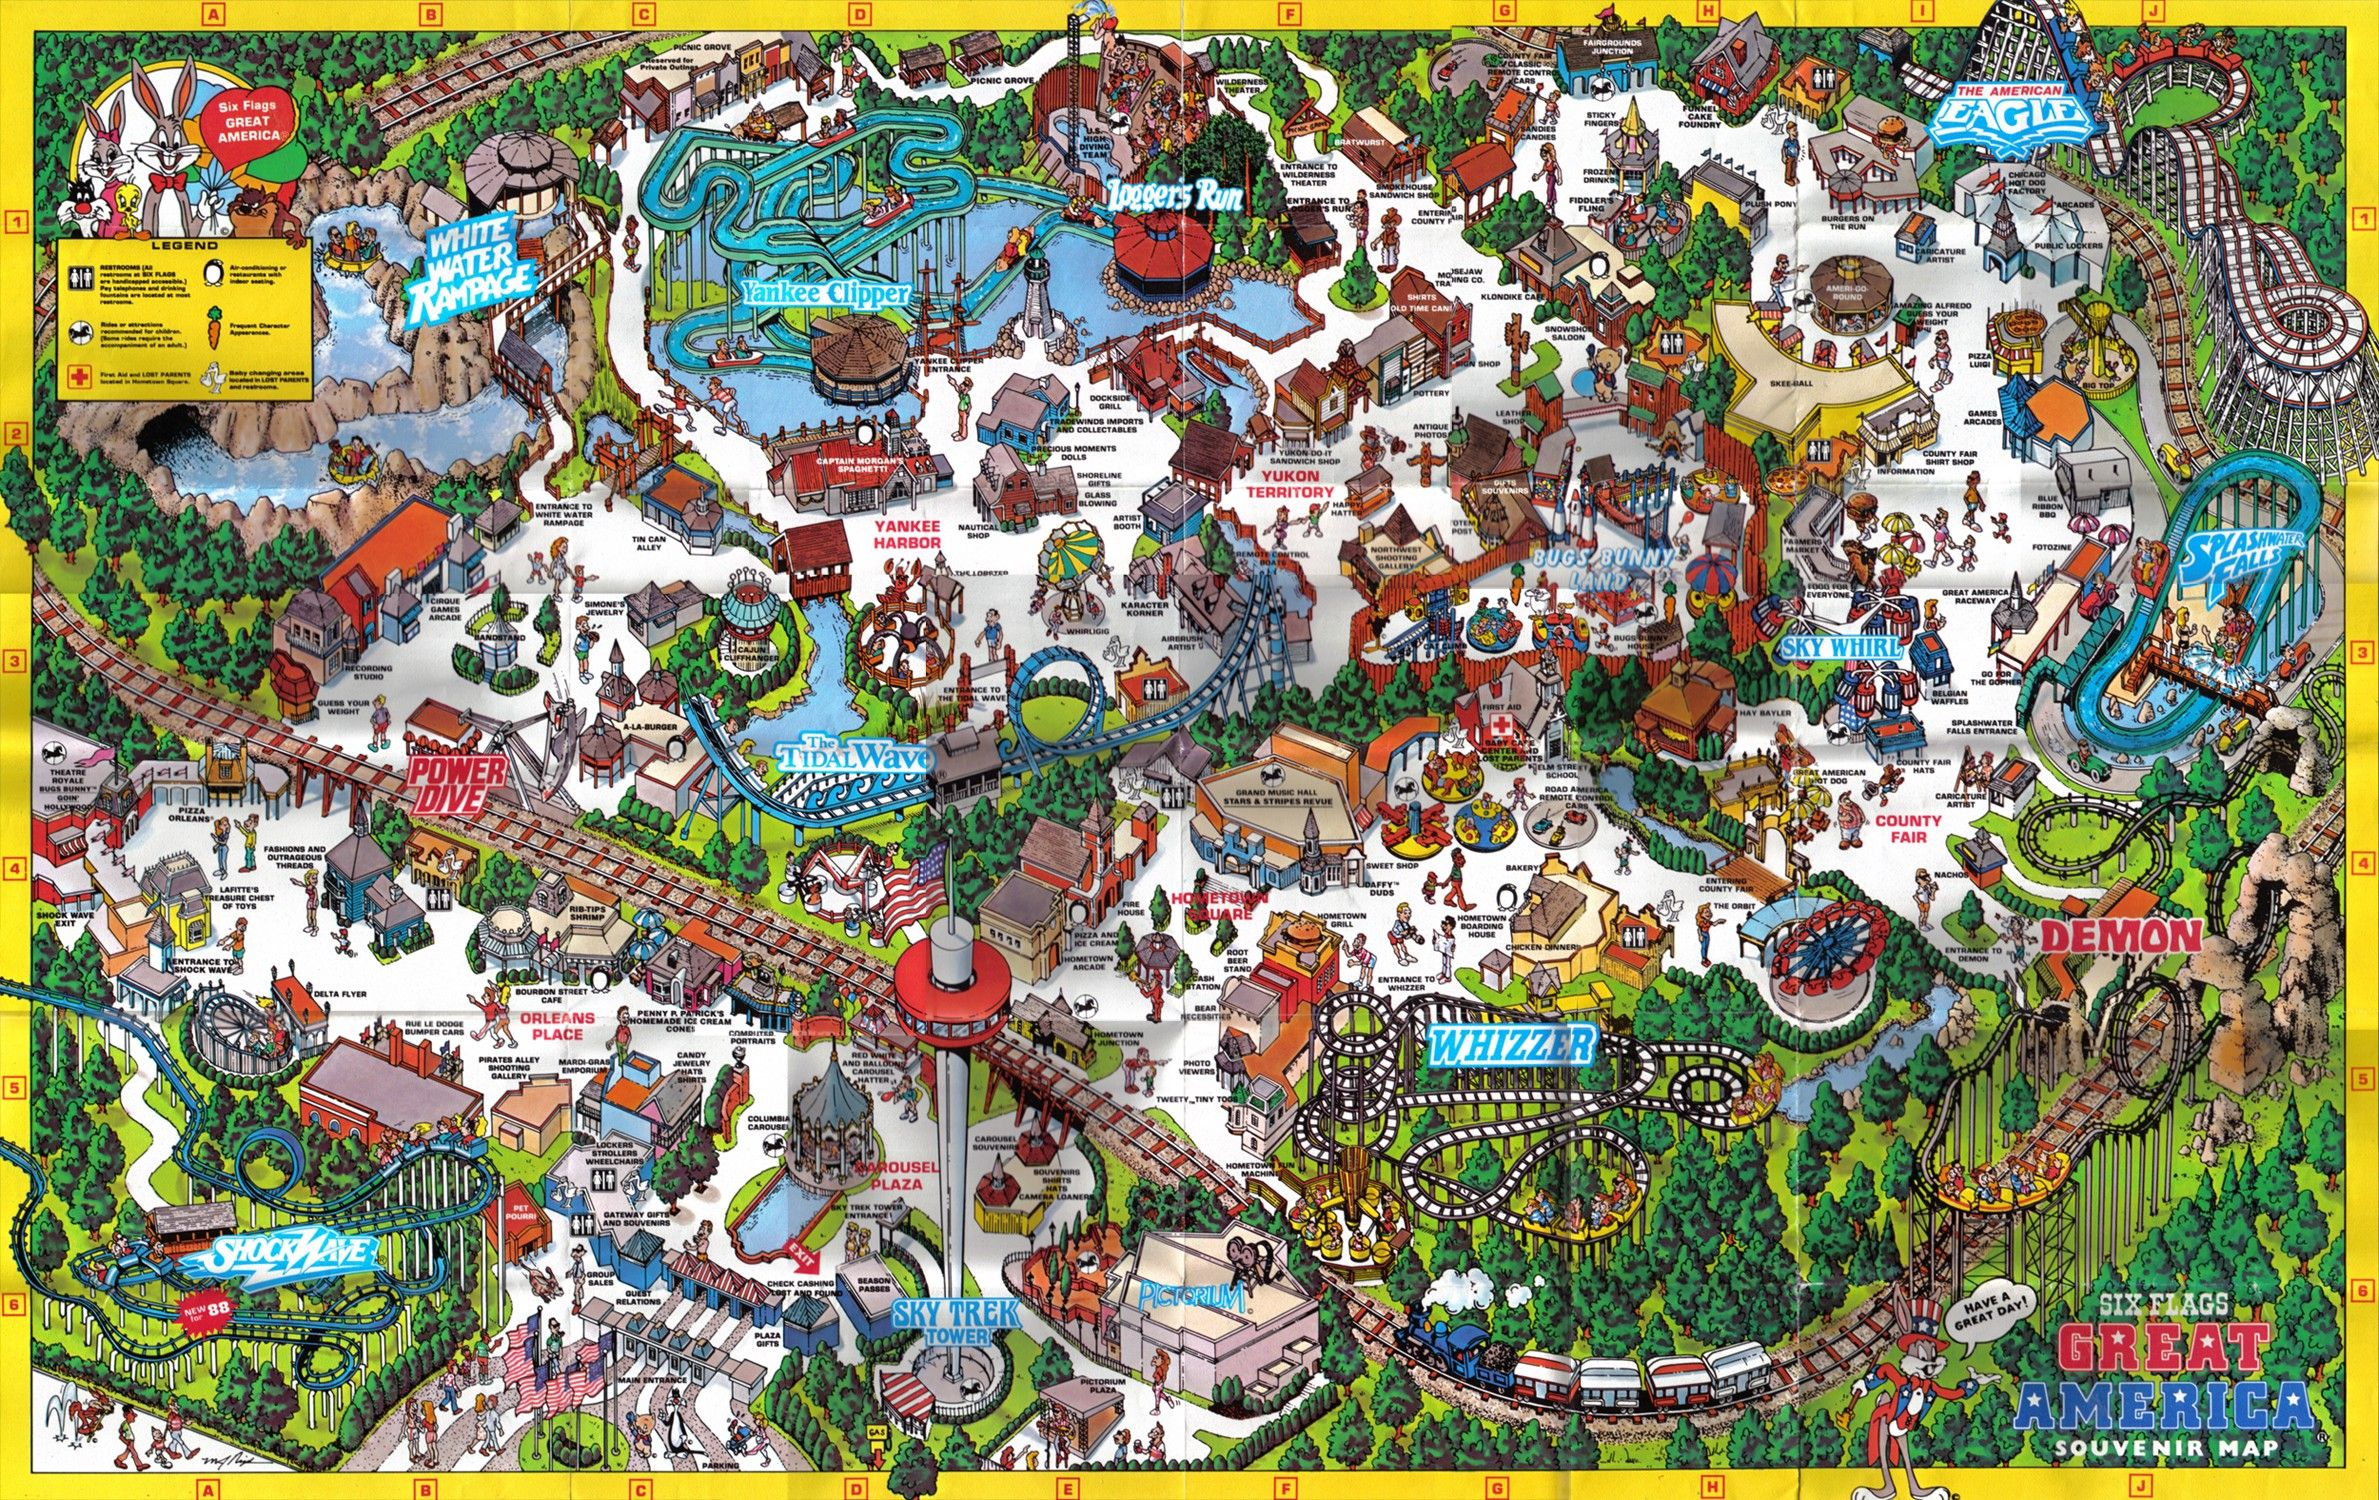 Map Of 6 Flags Great America.Pin By Toonamp On Animals Six Flags Astroworld Houston Park